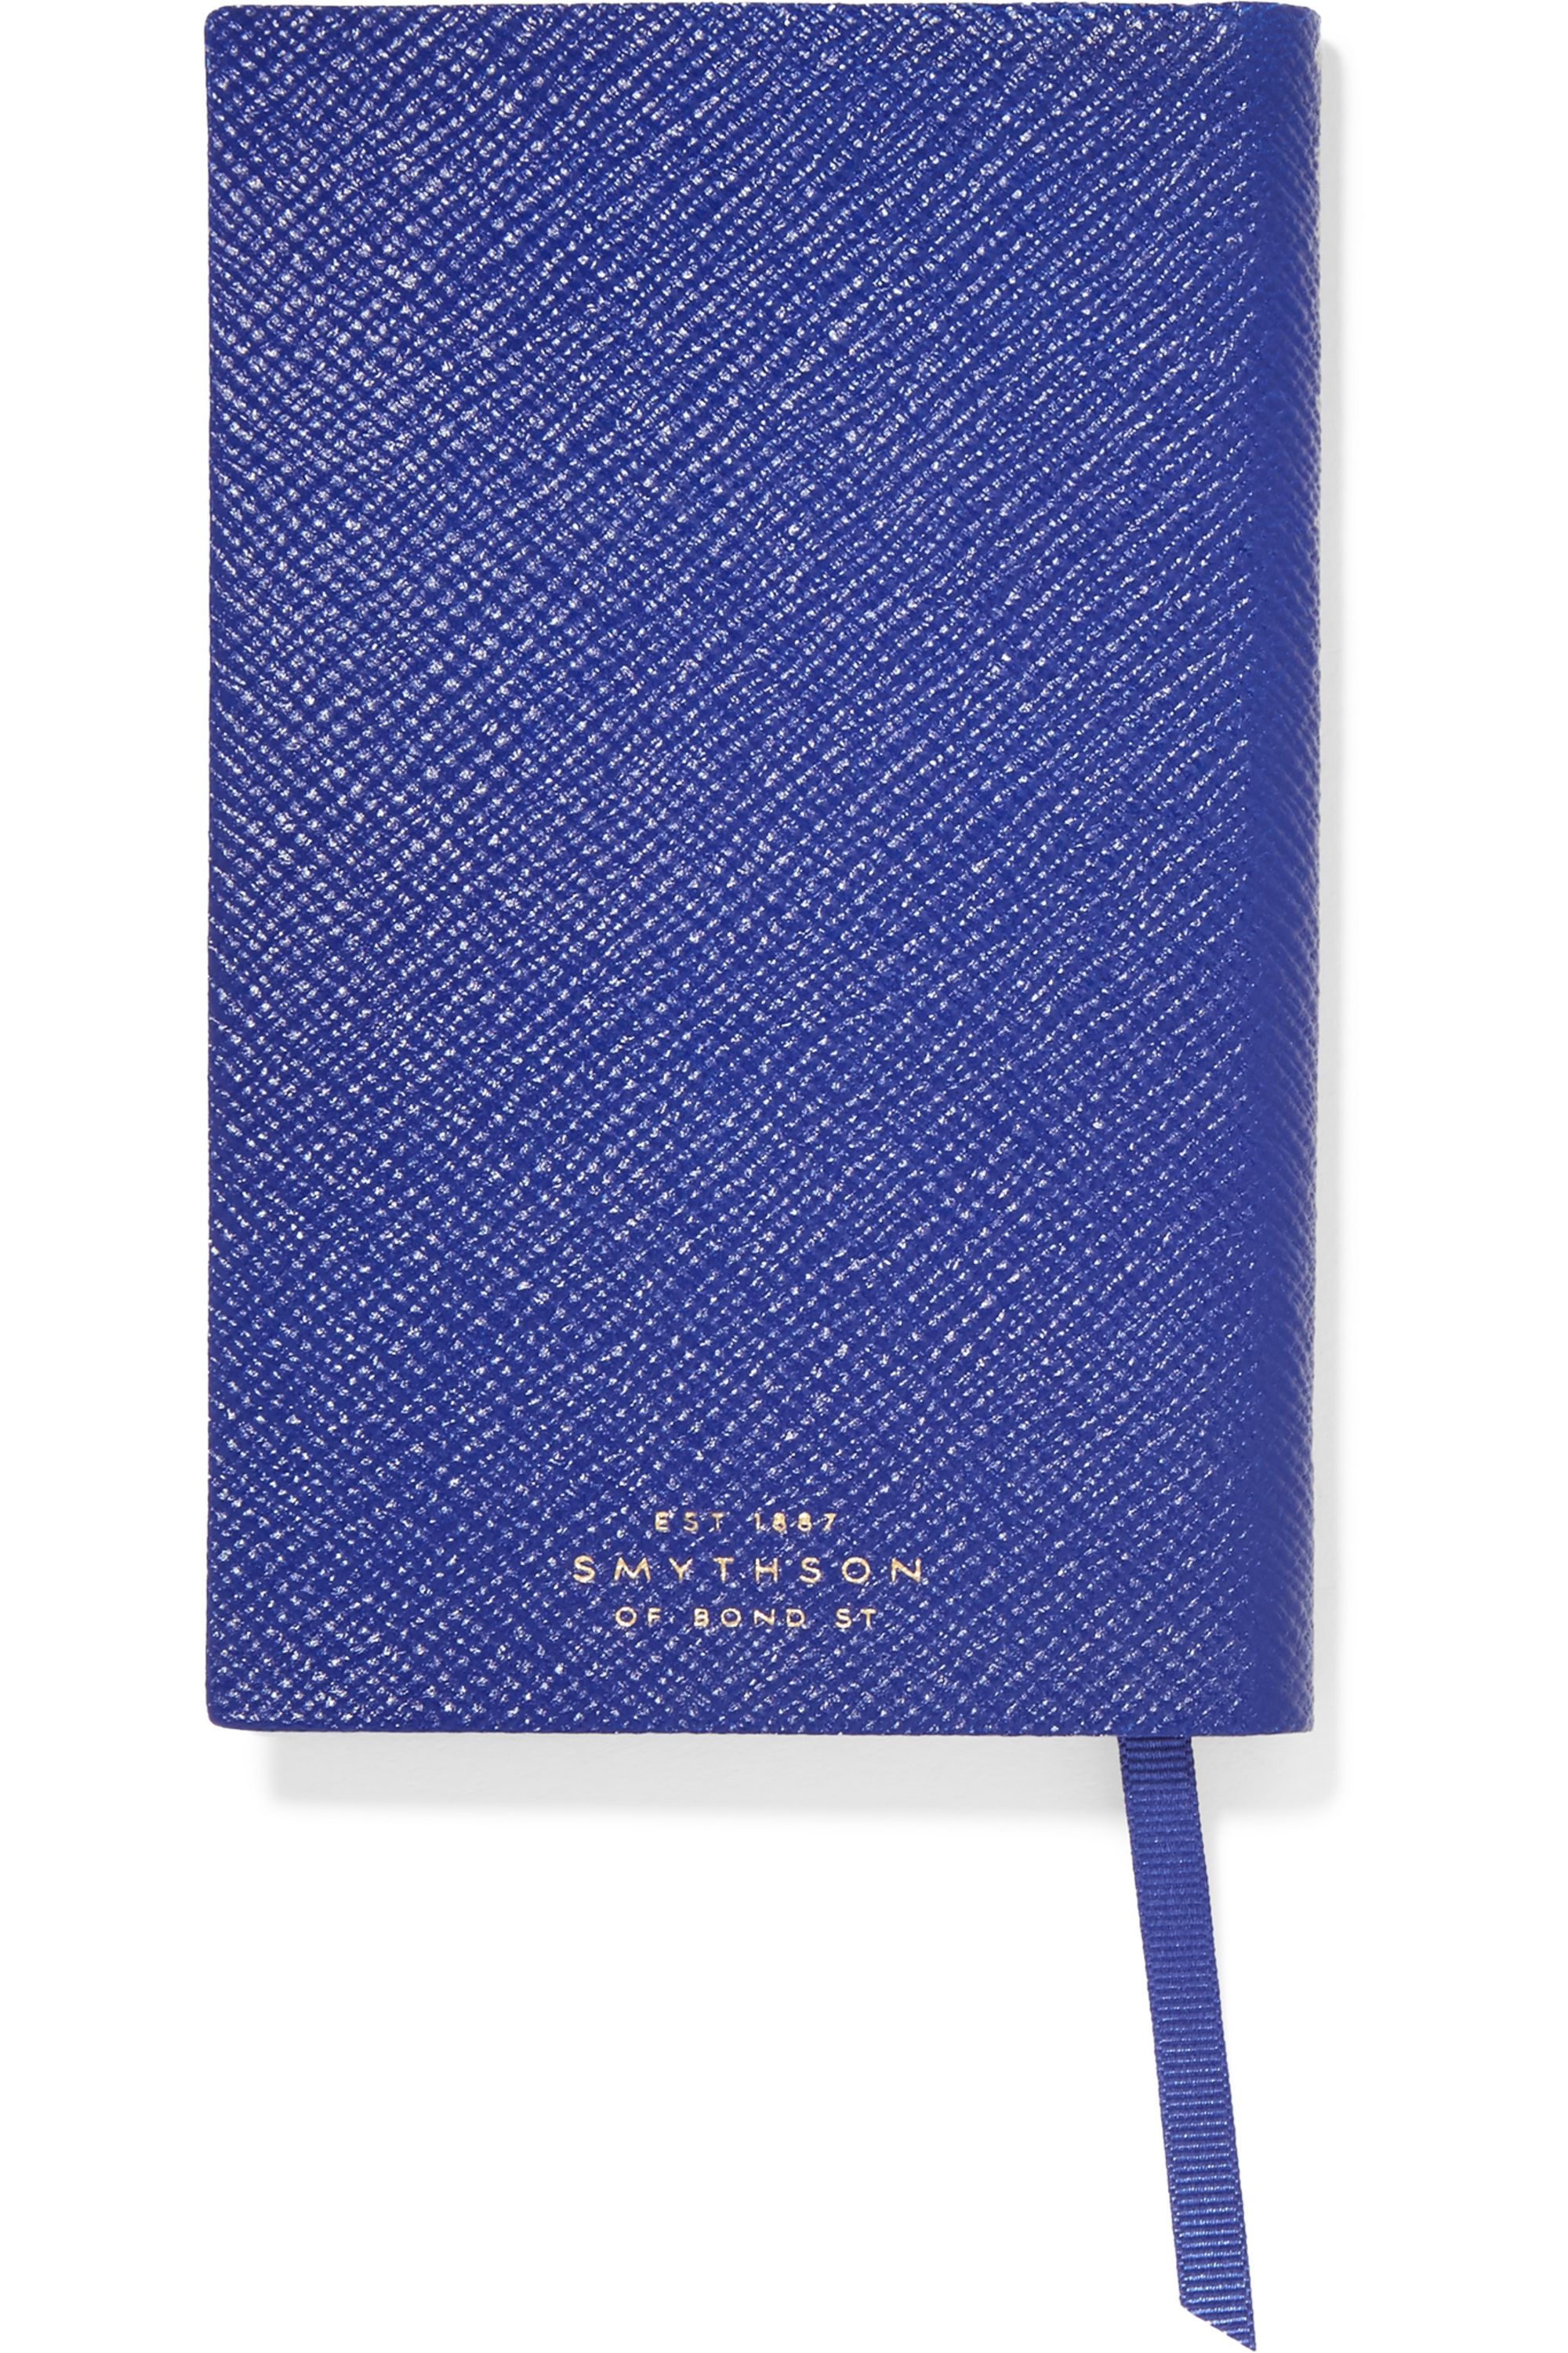 Smythson Panama Expect The Unexpected textured-leather notebook